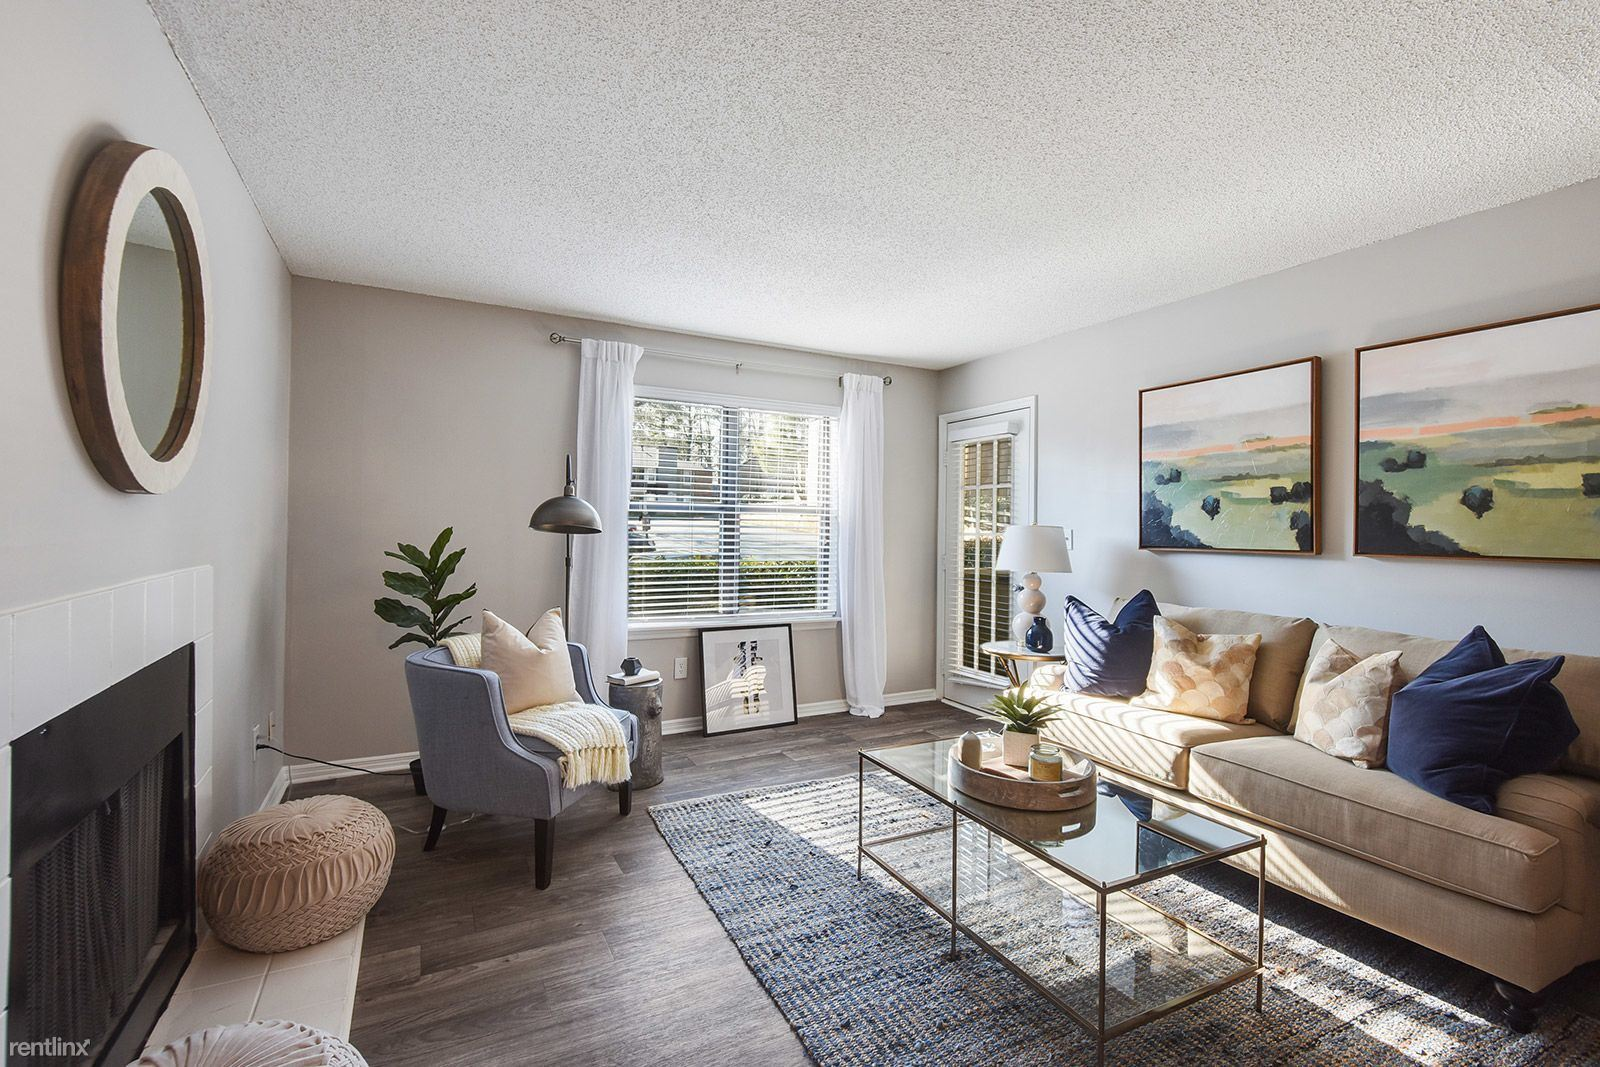 College Apartments in Smyrna | College Student Apartments